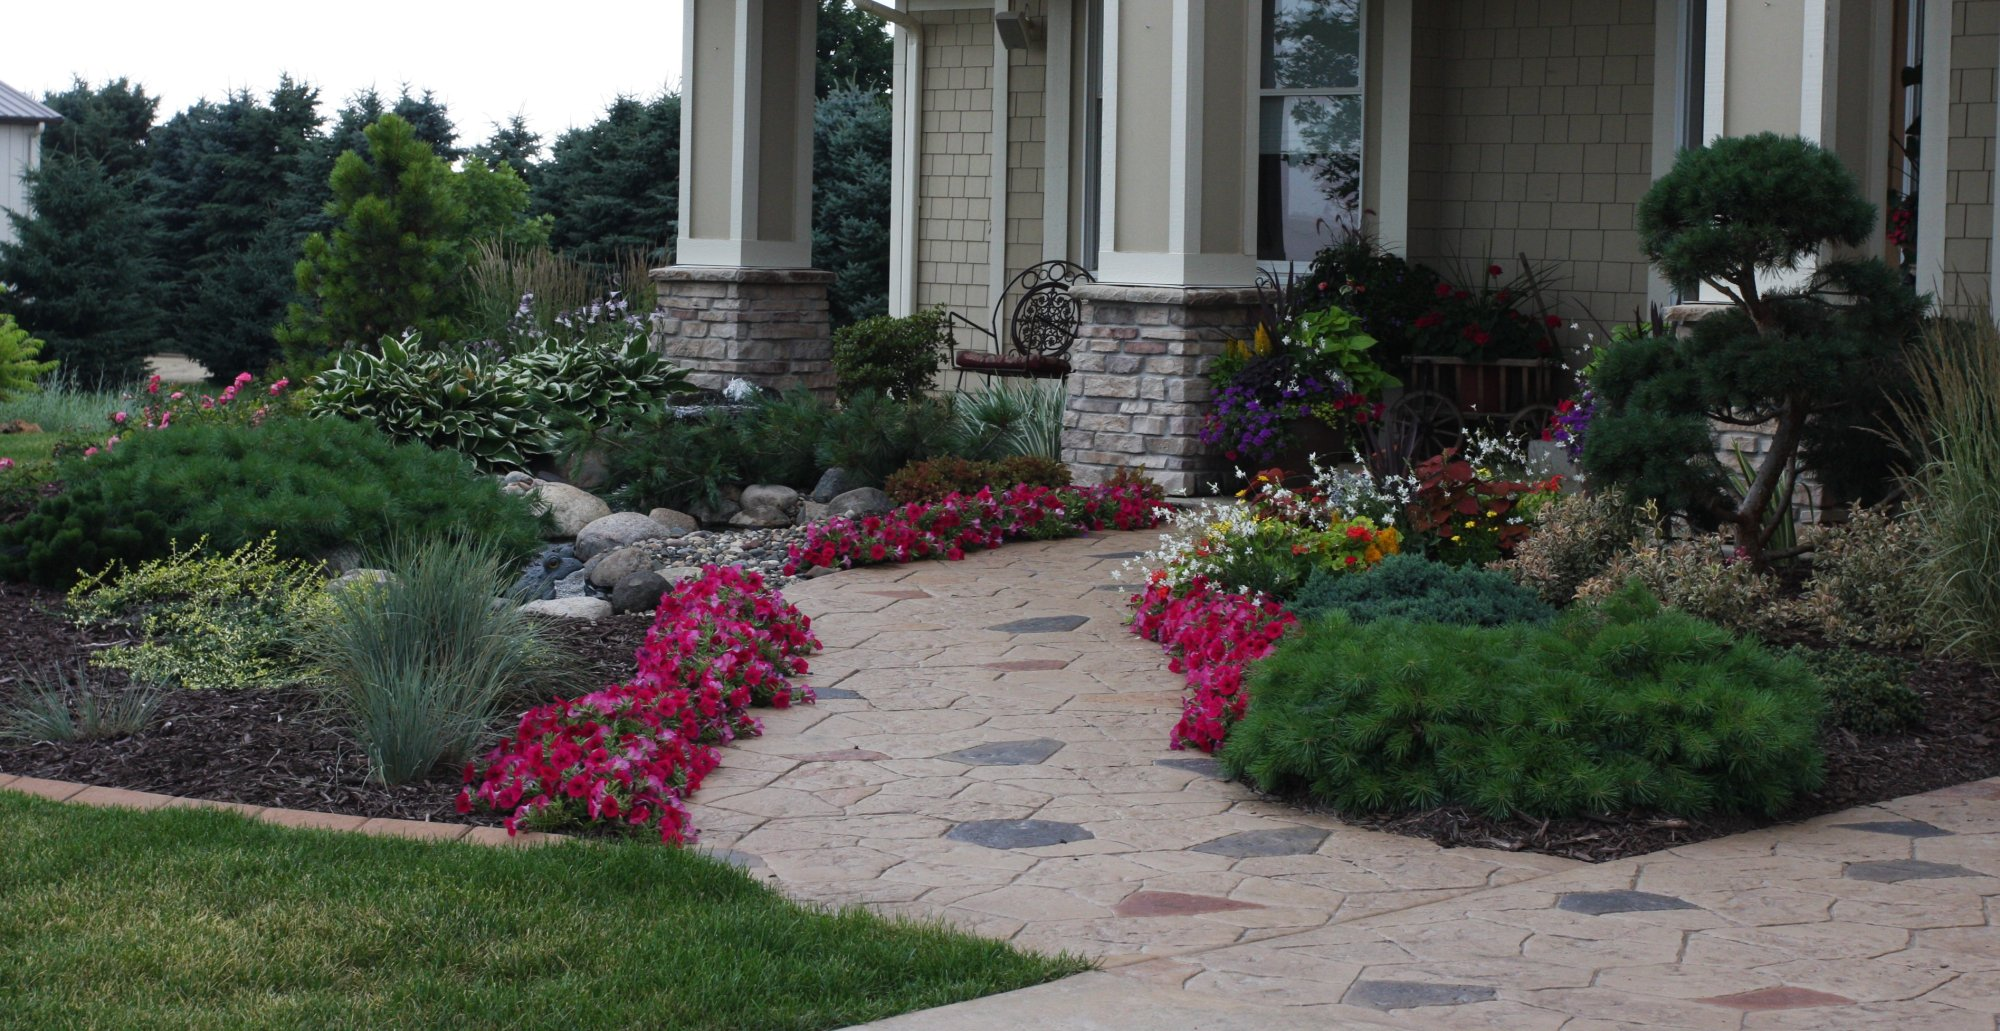 Landscape budgeting pahl 39 s market apple valley mn for Landscape design pictures